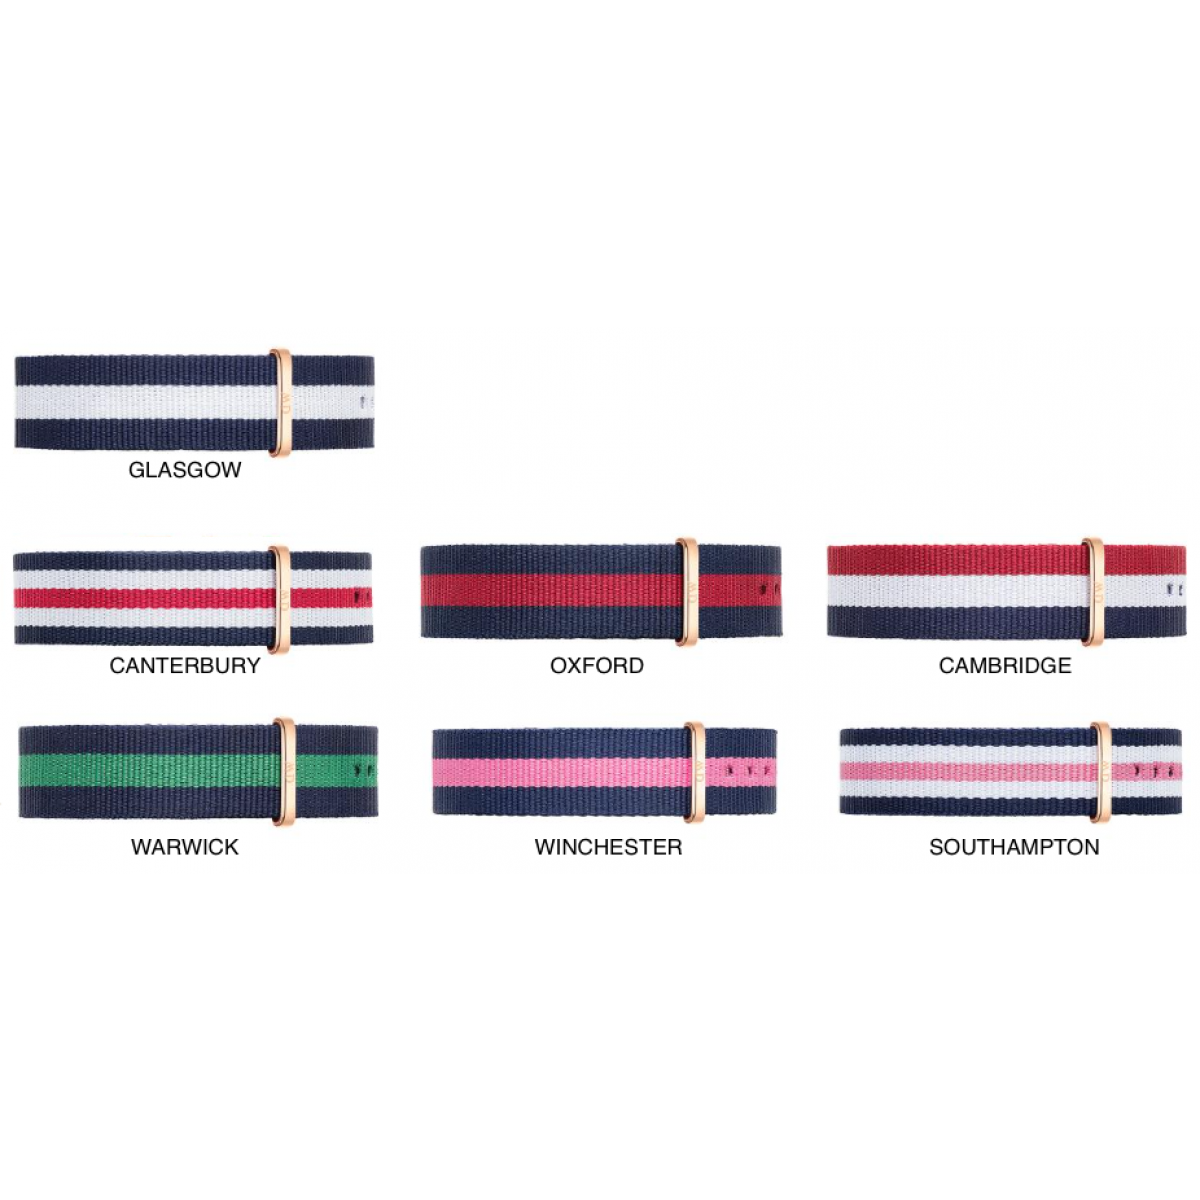 Løse NATO remme Daniel Wellington til 36 and 40 mm ure-30